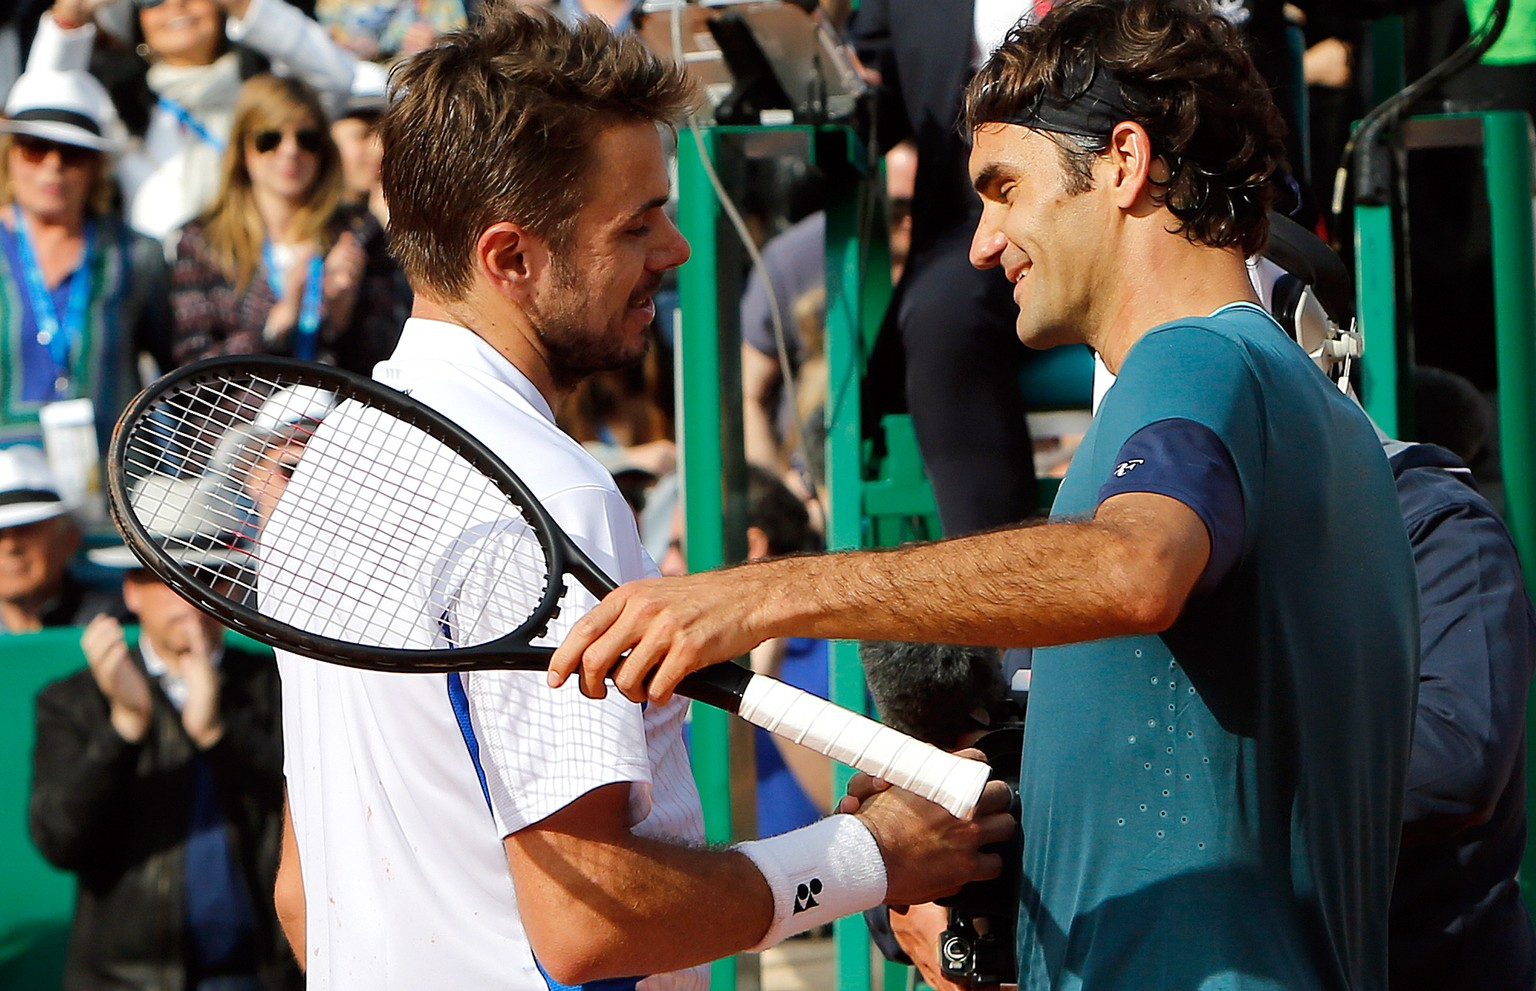 Roger Federer of Switzerland, right, congratulates Stanislas Wawrinka of Switzerland after his victory in the final match of the Monte Carlo Tennis Masters tournament in Monaco, Sunday April 20, 2014. Wawrinka won 4-6, 7-6, 6-2. (AP Photo/Claude Paris)